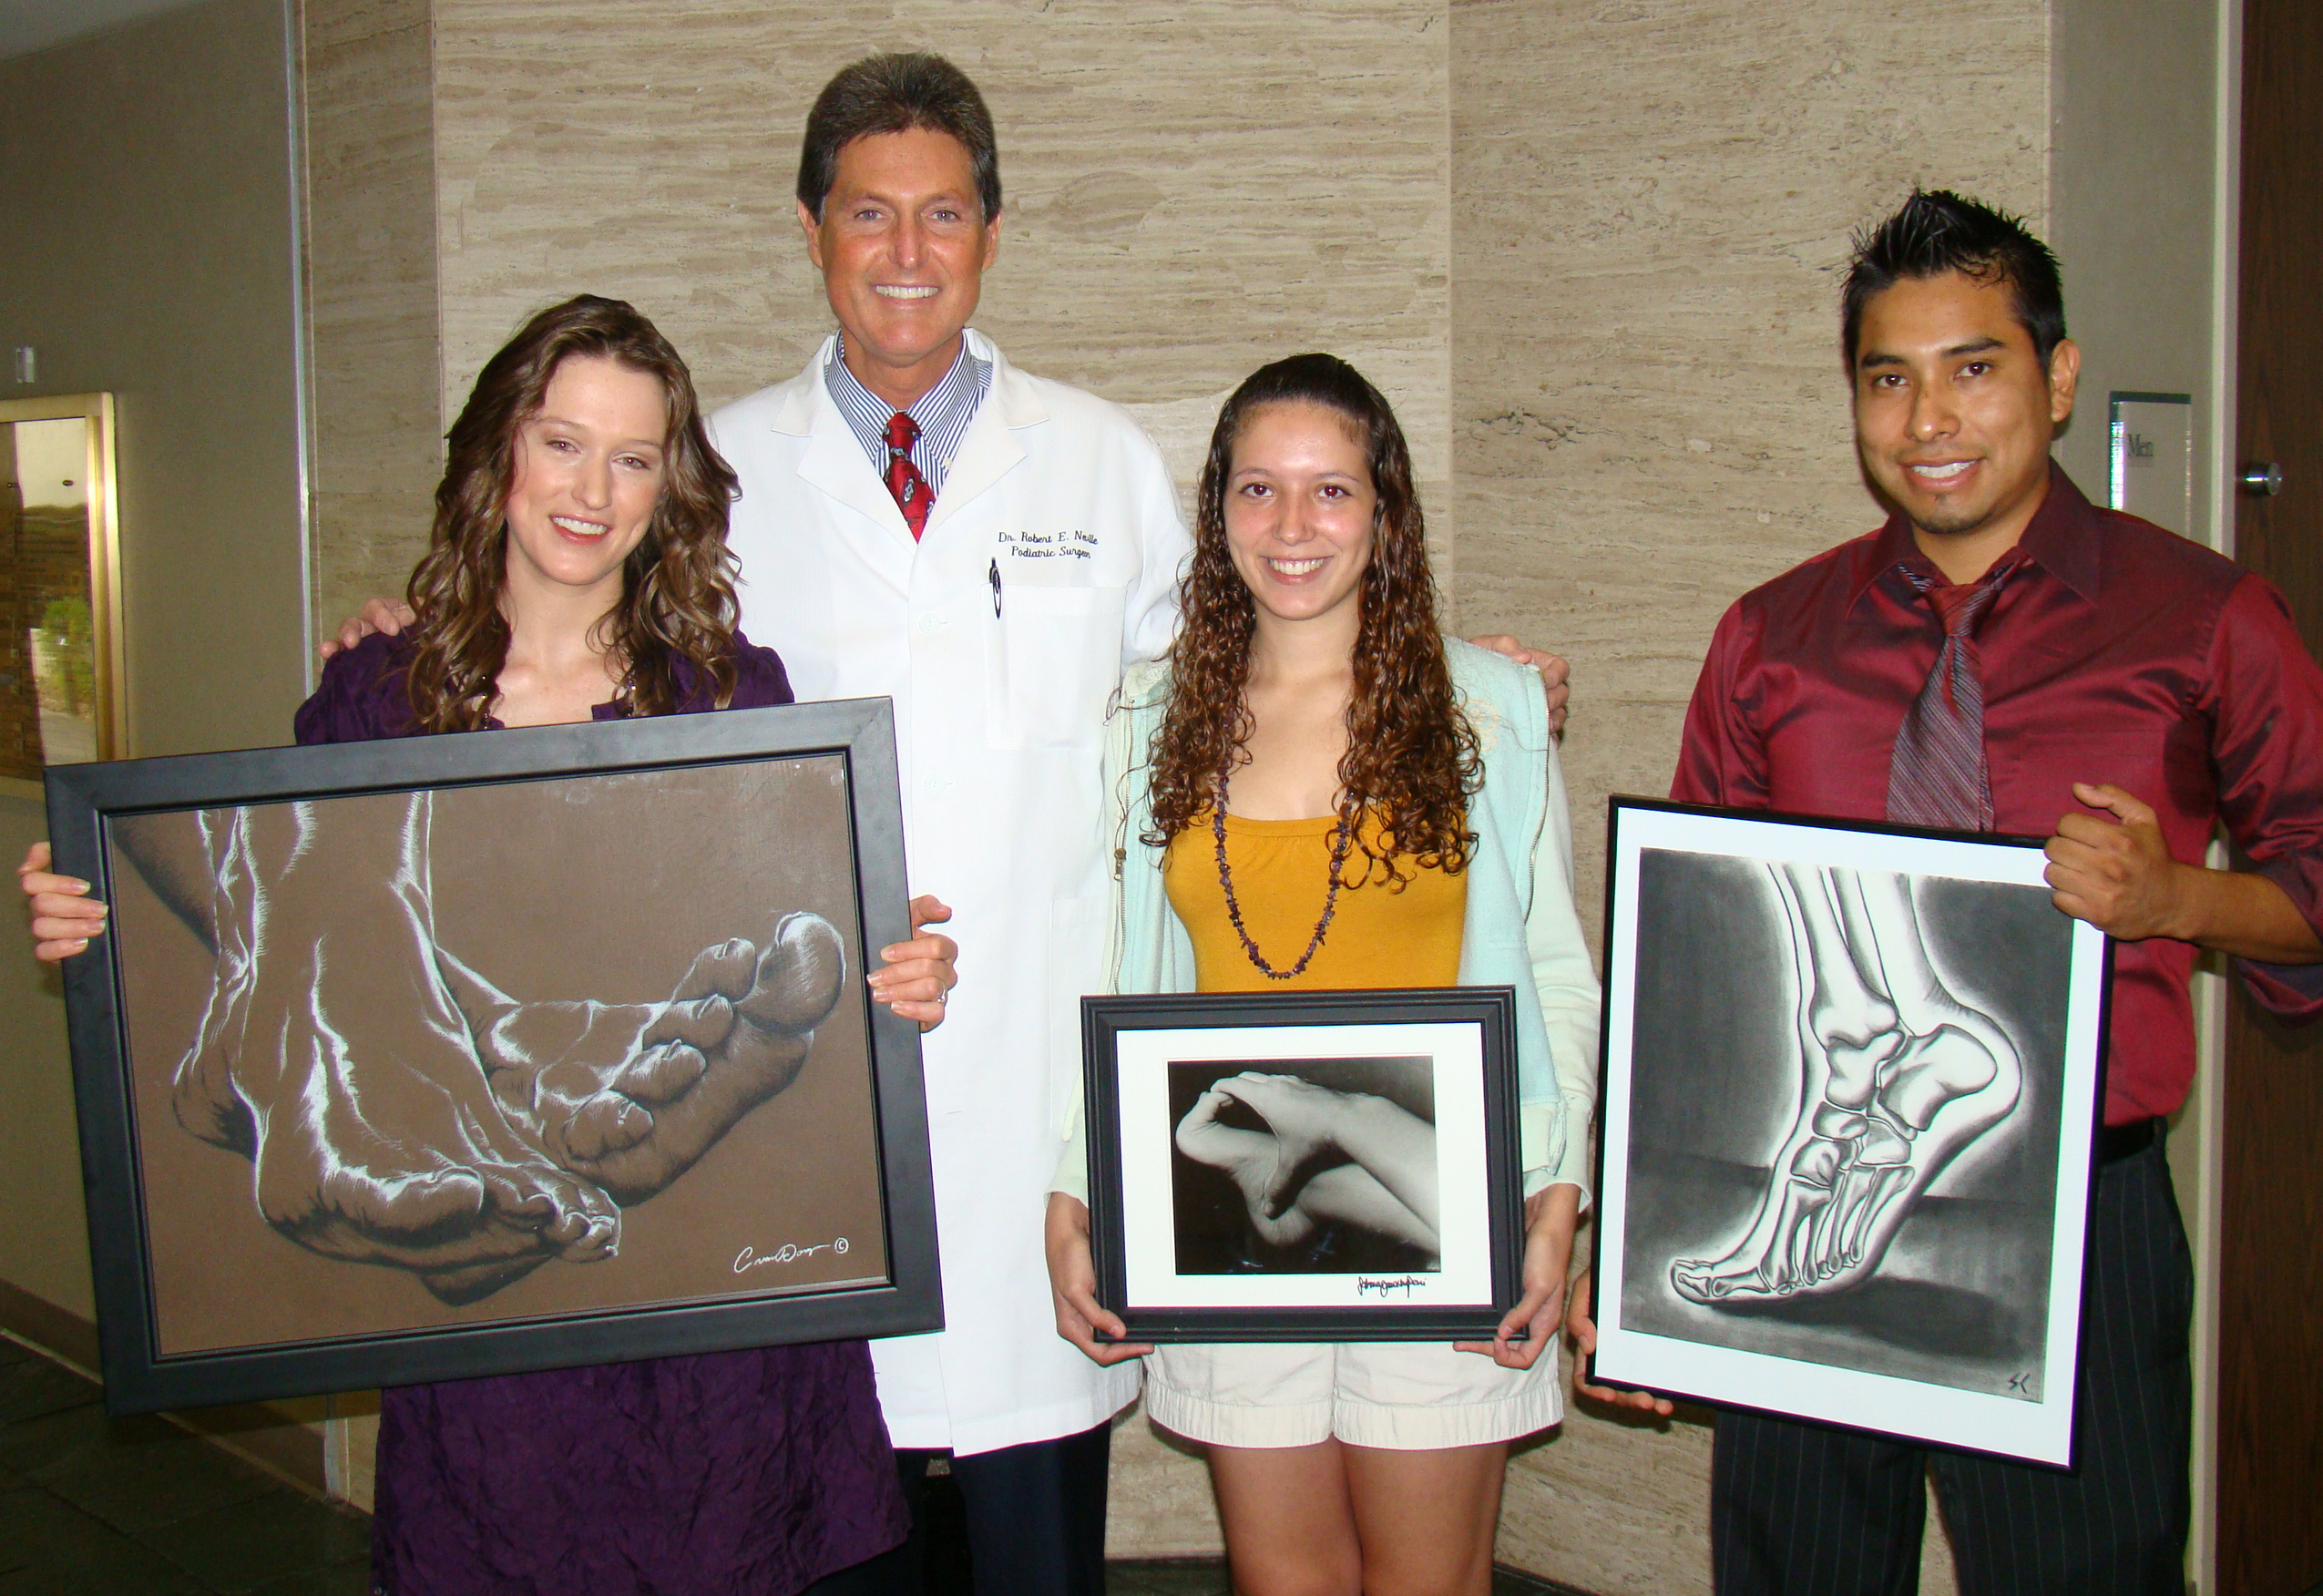 Dr. Robert Neville, of Foot Health Care Center in The Woodlands, proudly recognizes three of the four winners of his annual foot art scholarship contest. Pictured from left to right are: Cassandra van Dongen, Dr. Neville, Sabrina Camacho Pessi, and Steeve Calderon.